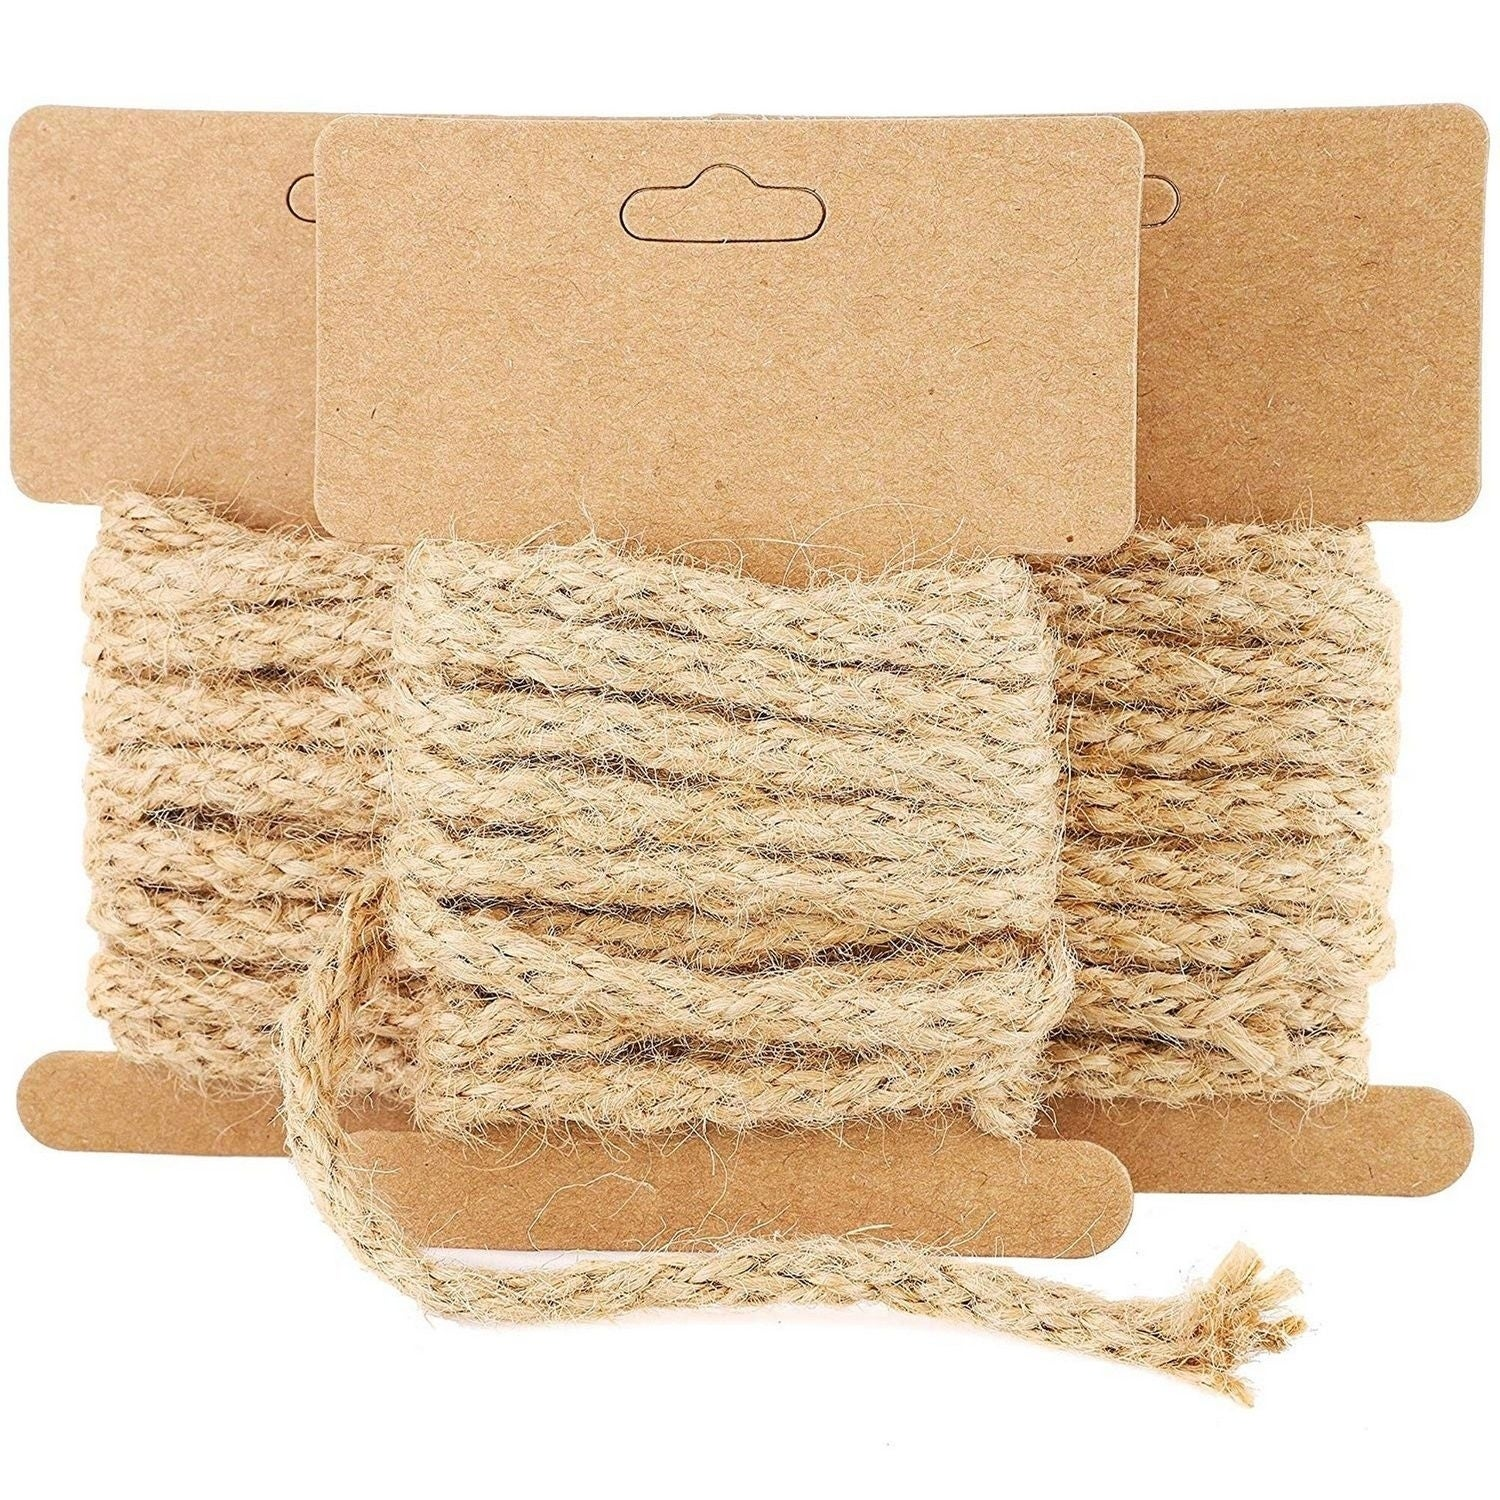 12 Pack 6 5 Feet Natural Jute Hemp Rope Cord Twine String For Crafts Diy 5mm Overstock 29775059